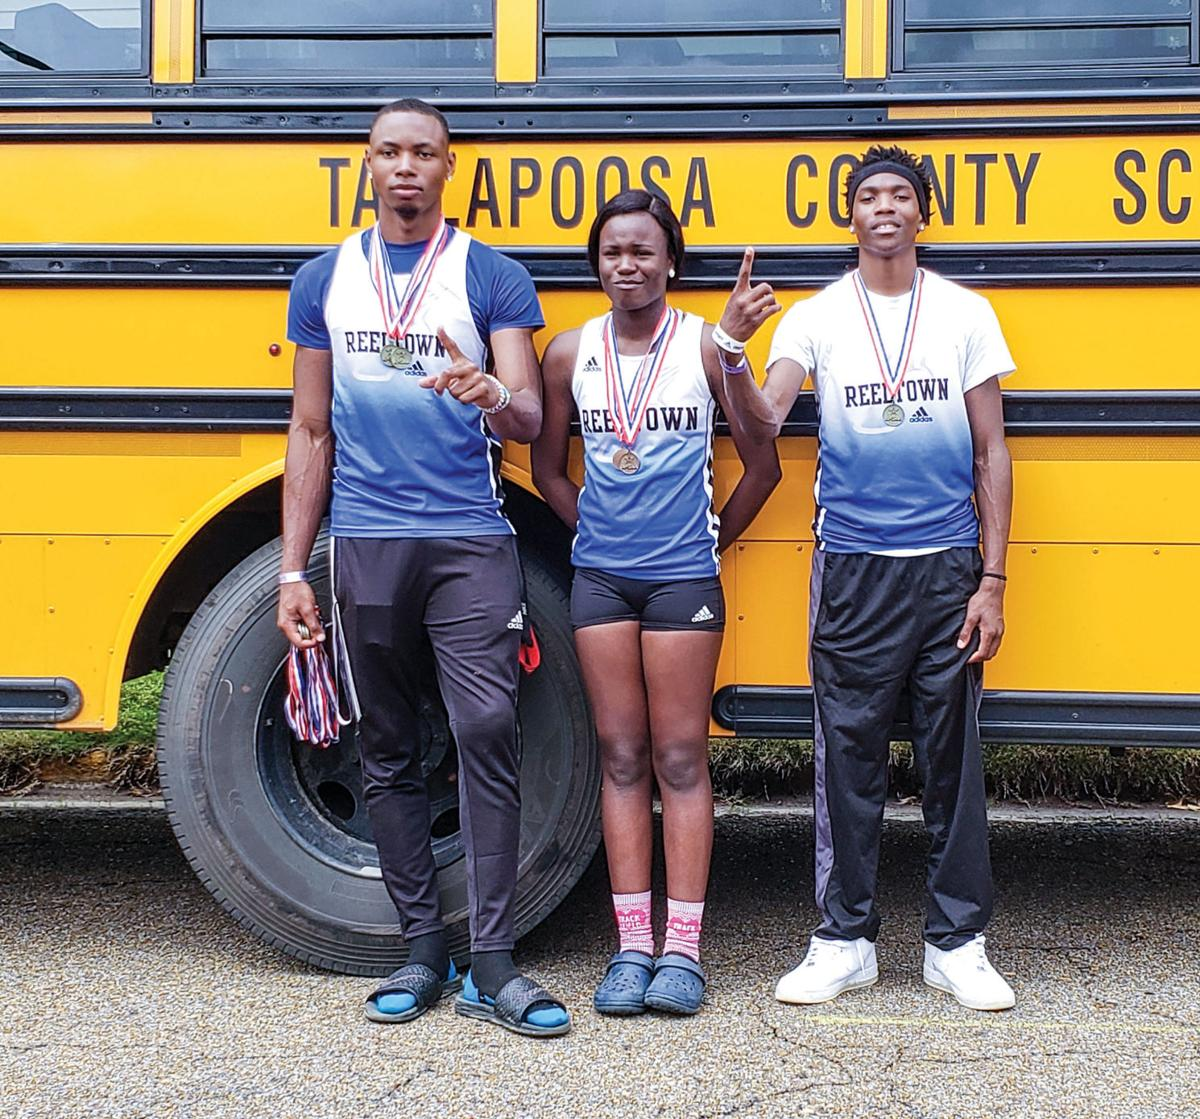 Reeltown track and field